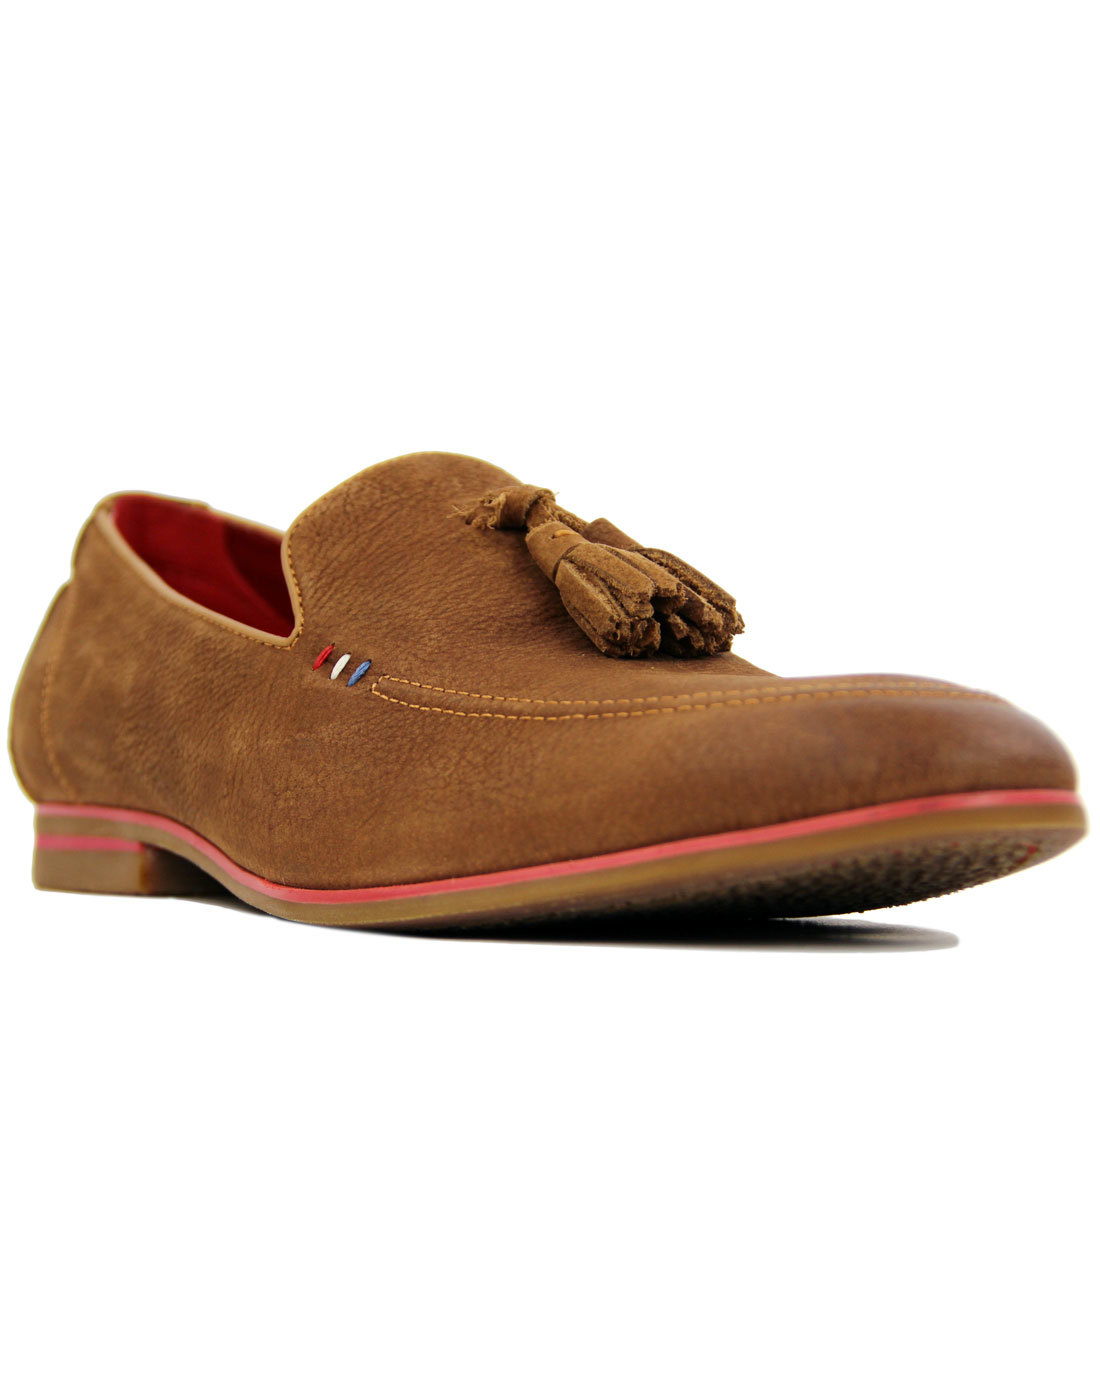 Rene SERGIO DULETTI Mod Leather Tassel Loafers TAN